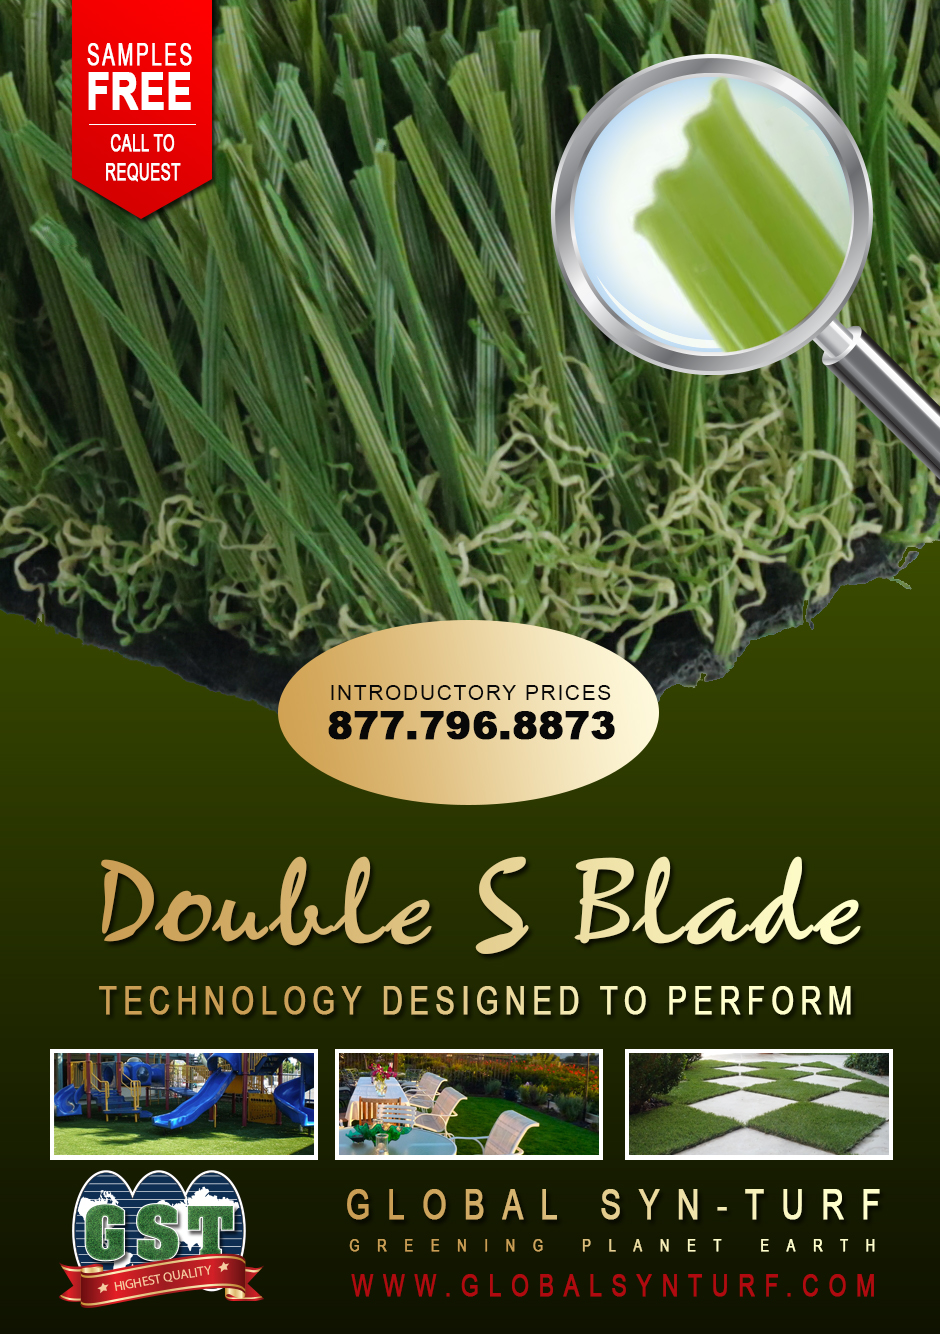 fakegrass Global Syn-Turf Launches Premium Double S Blade Artificial Grass Technology